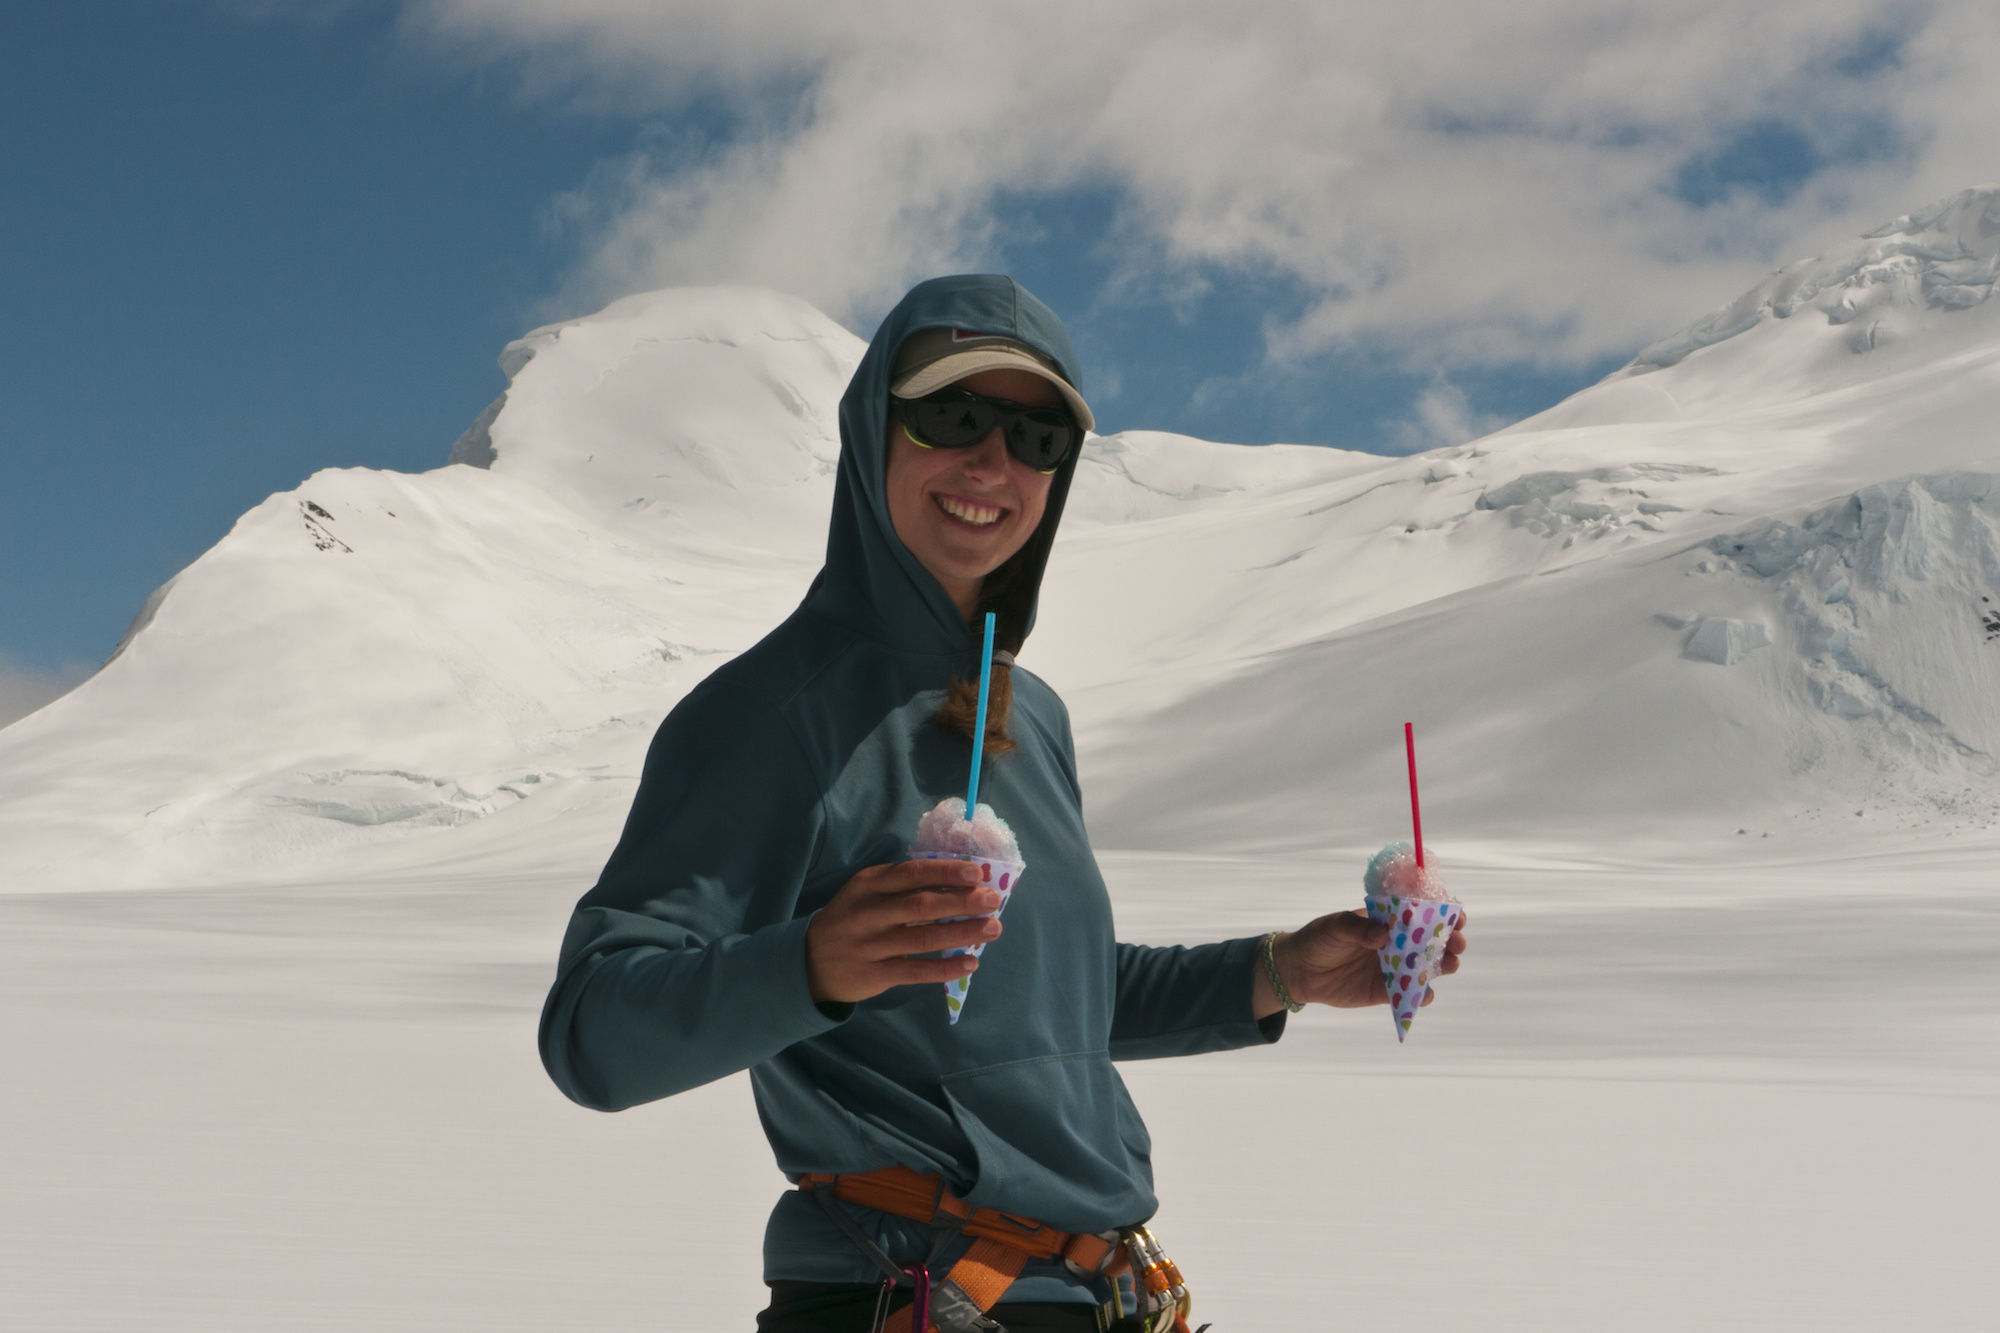 smiling NOLS participant holds a snow cone in each hand  with snowy mountains in the background